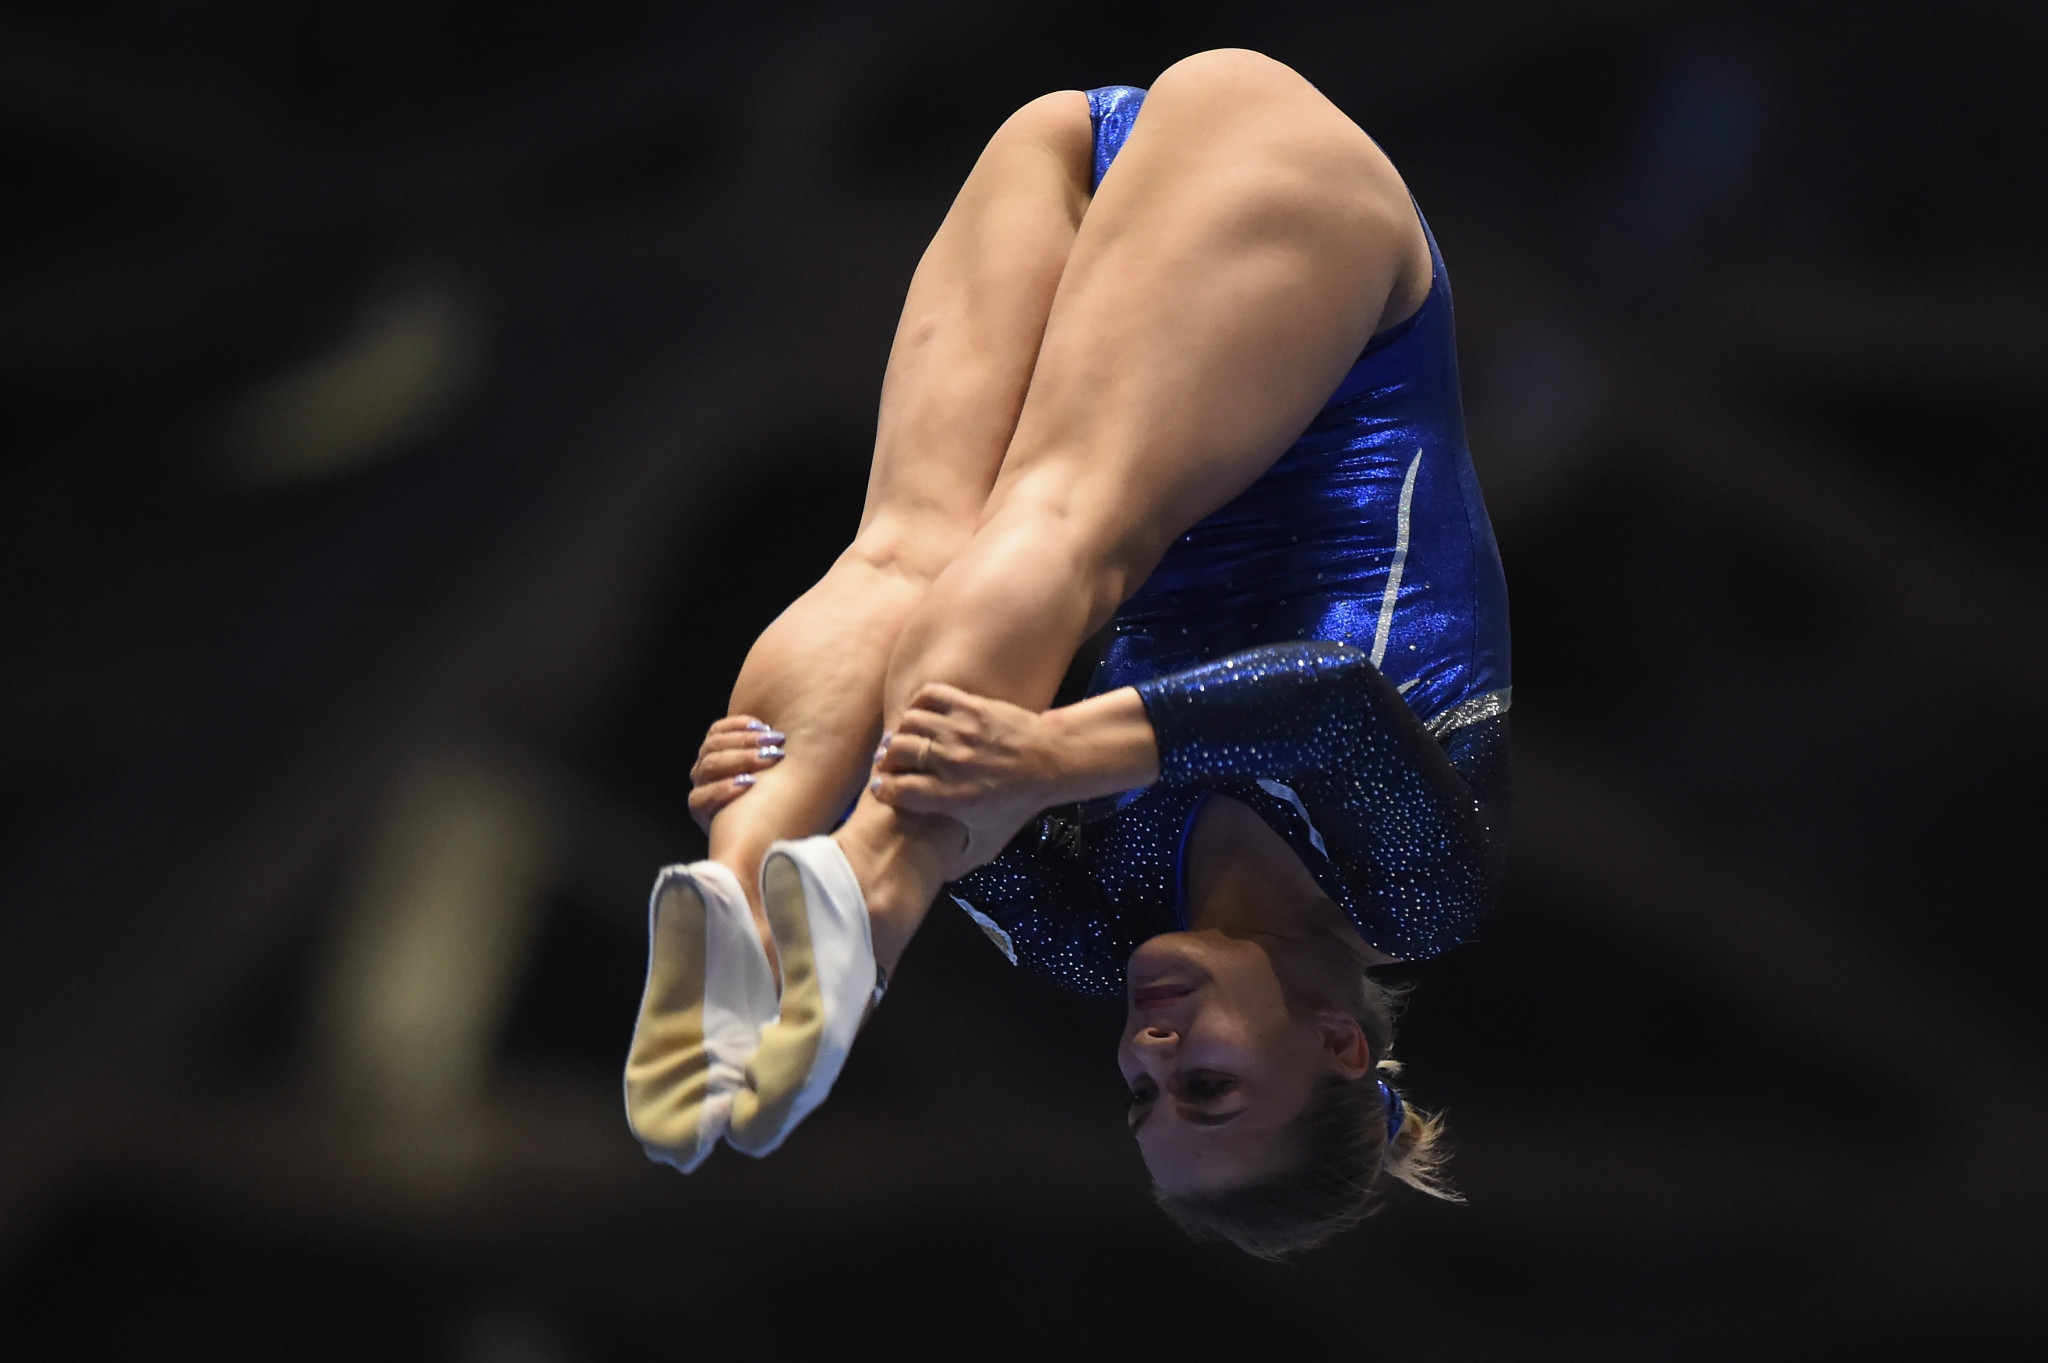 Russia's Yana Pavlova is among the star names set to compete in Baku ©Getty Images